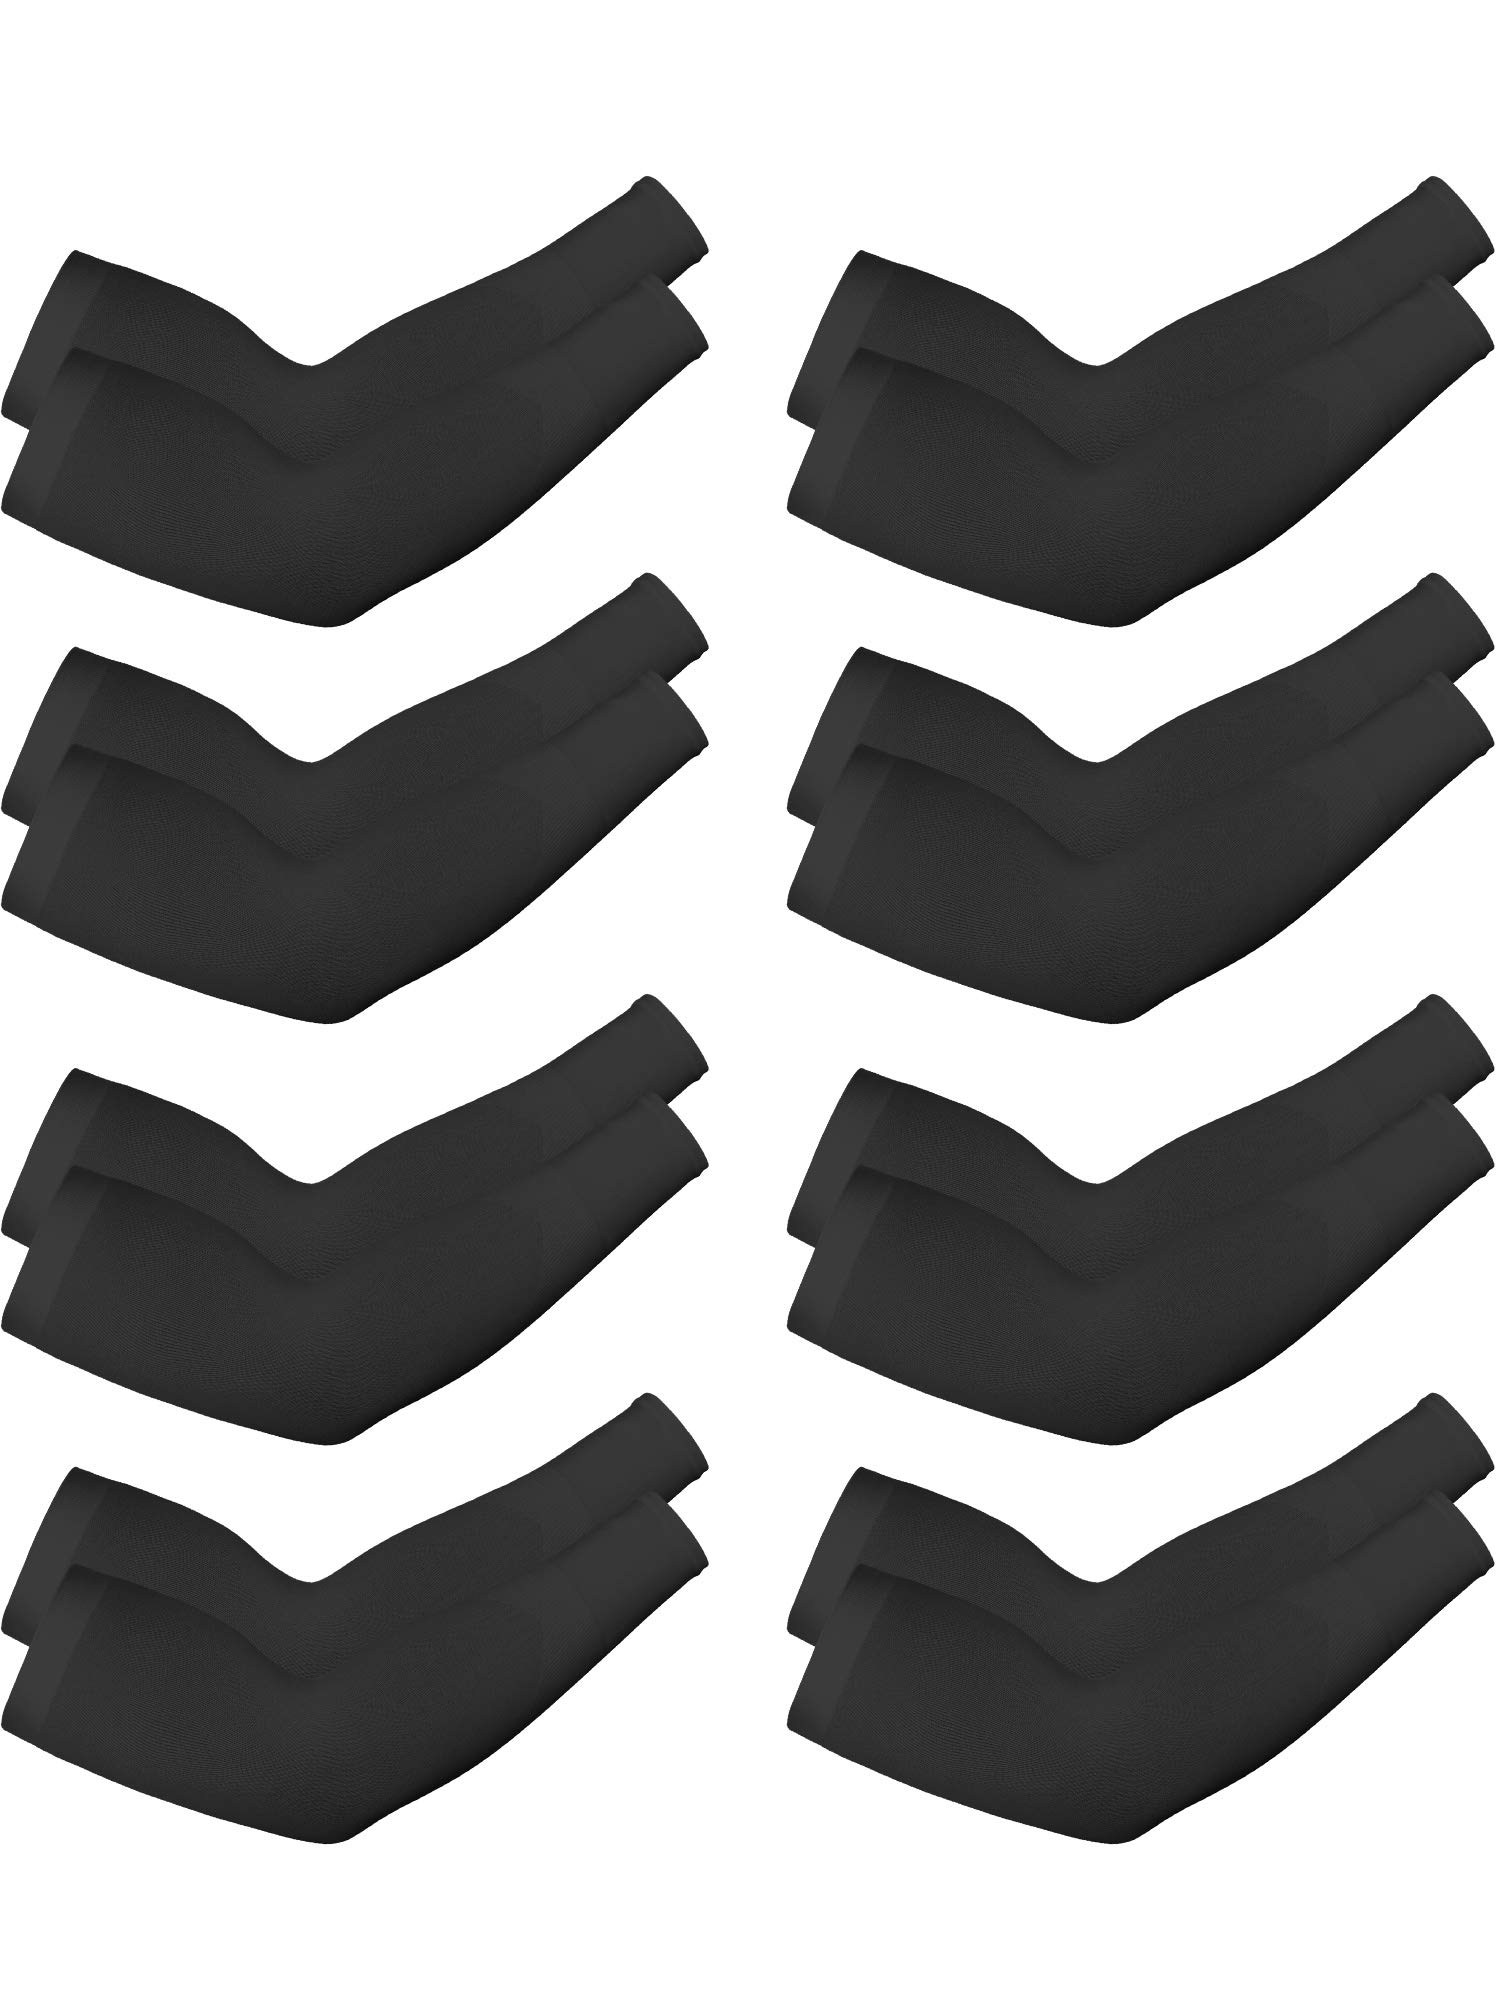 Boao 8 Pairs Unisex Arm Sleeves UV Sun Protection Cooling Sleeves for Driving Jogging Golfing Riding Outdoor Activities (Black, Style 2)